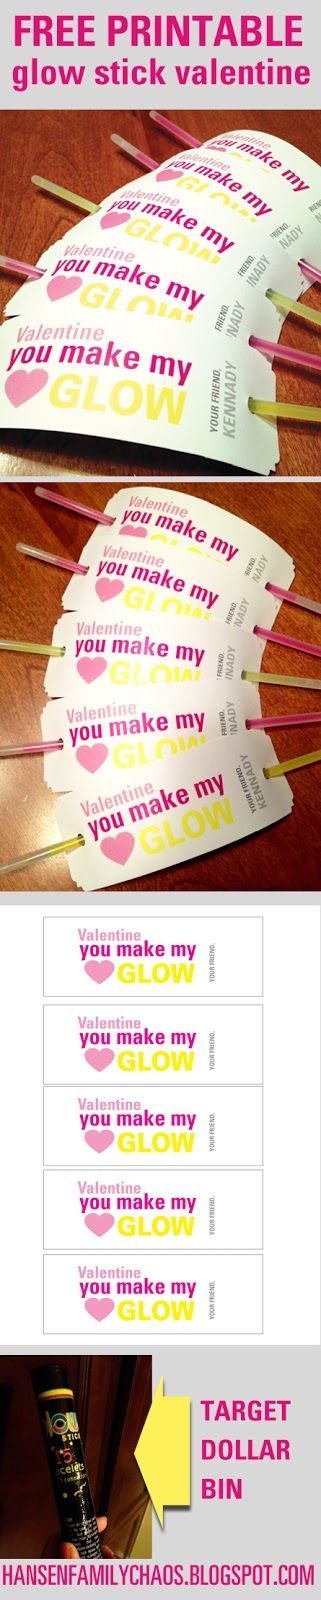 GLOW STICKS>>>Easy peasy kids Valentine's Day treats: FREE PRINTABLES